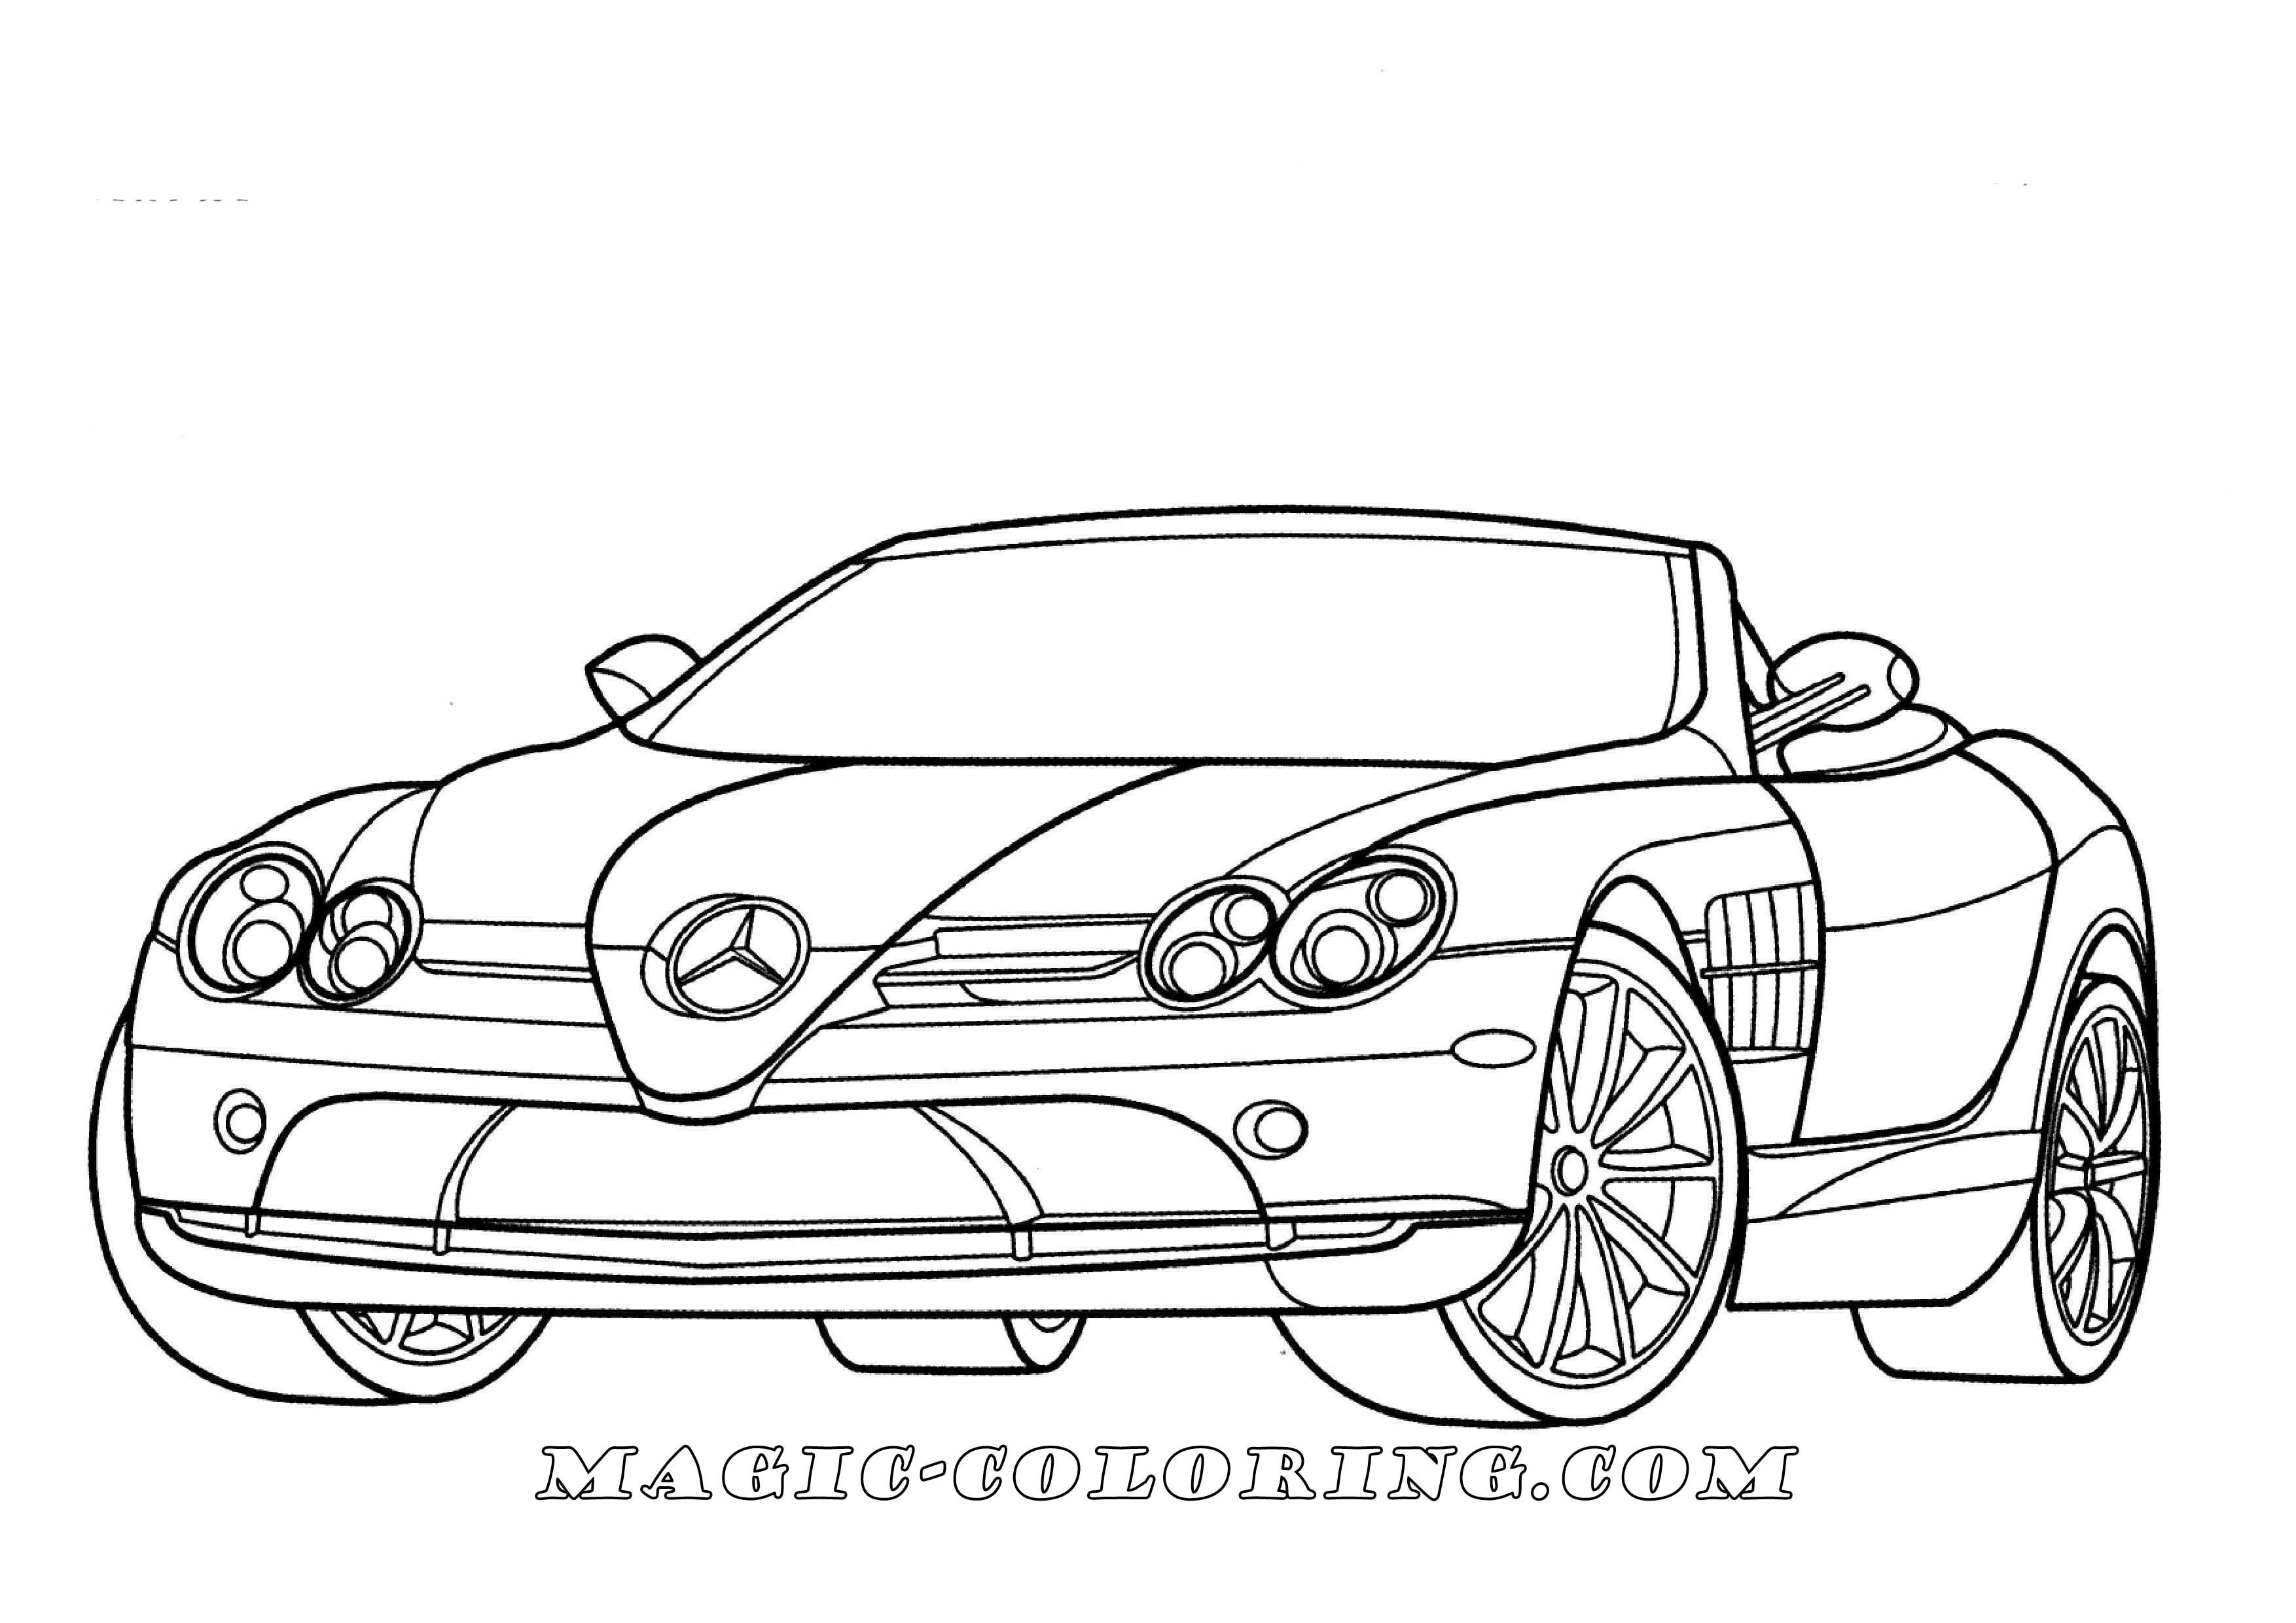 Mercedes Benz Slr Mclaren Coloring Page Sports Coloring Pages Lowrider Drawings Mercedes